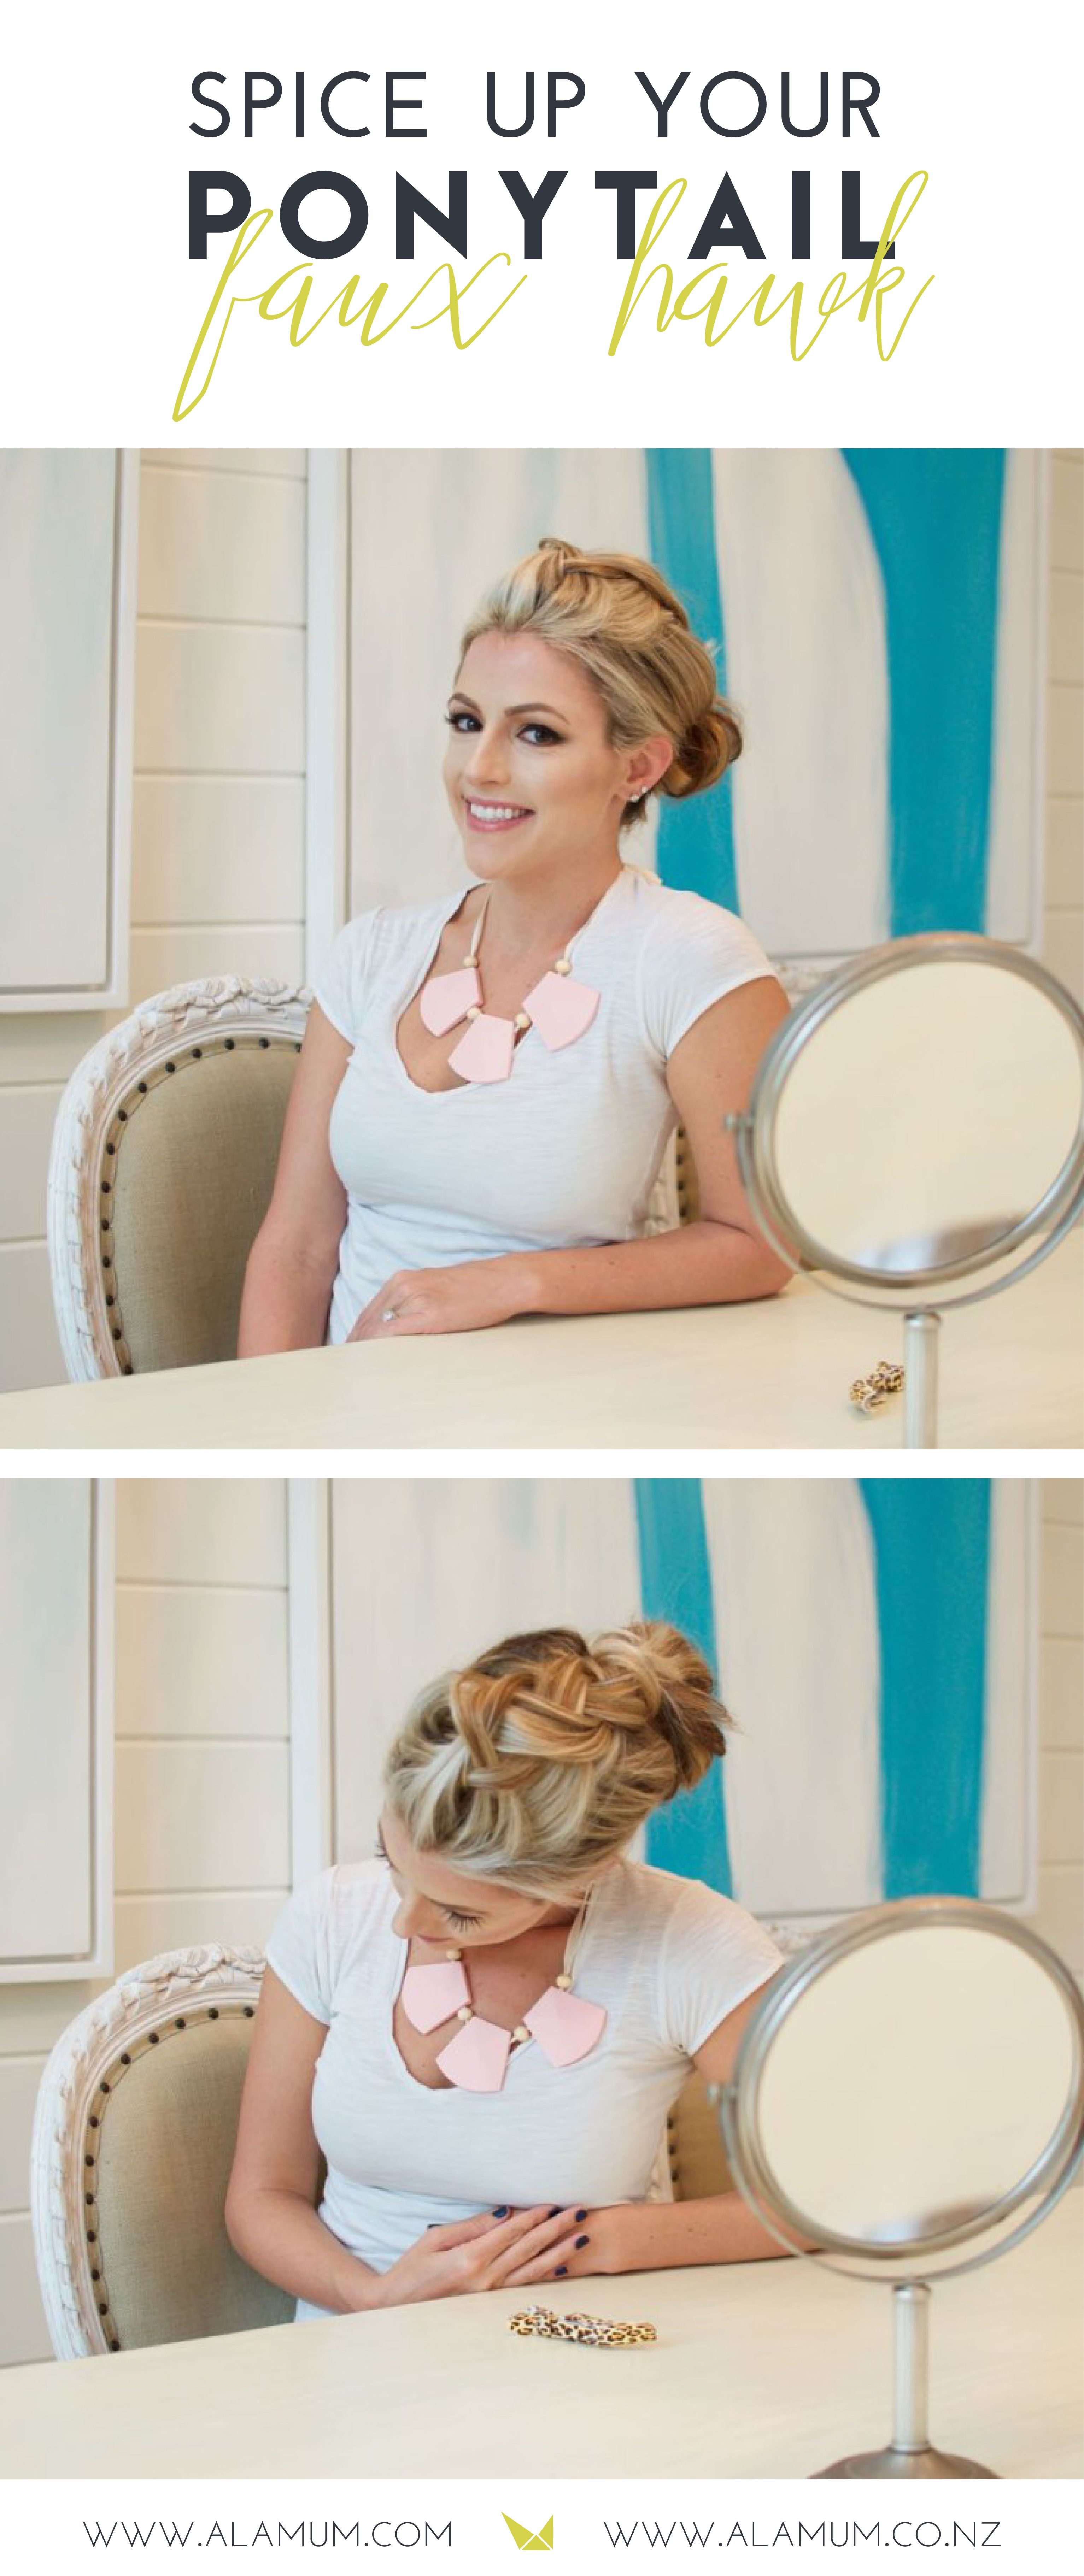 Do you need a new way to up your ponytail game? This is the absolute easiest way to spice up your ponytail! This hair tutorial takes less than 5 minutes and is so great for any occasion! | www.alamum.com | www.alamum.co.nz |